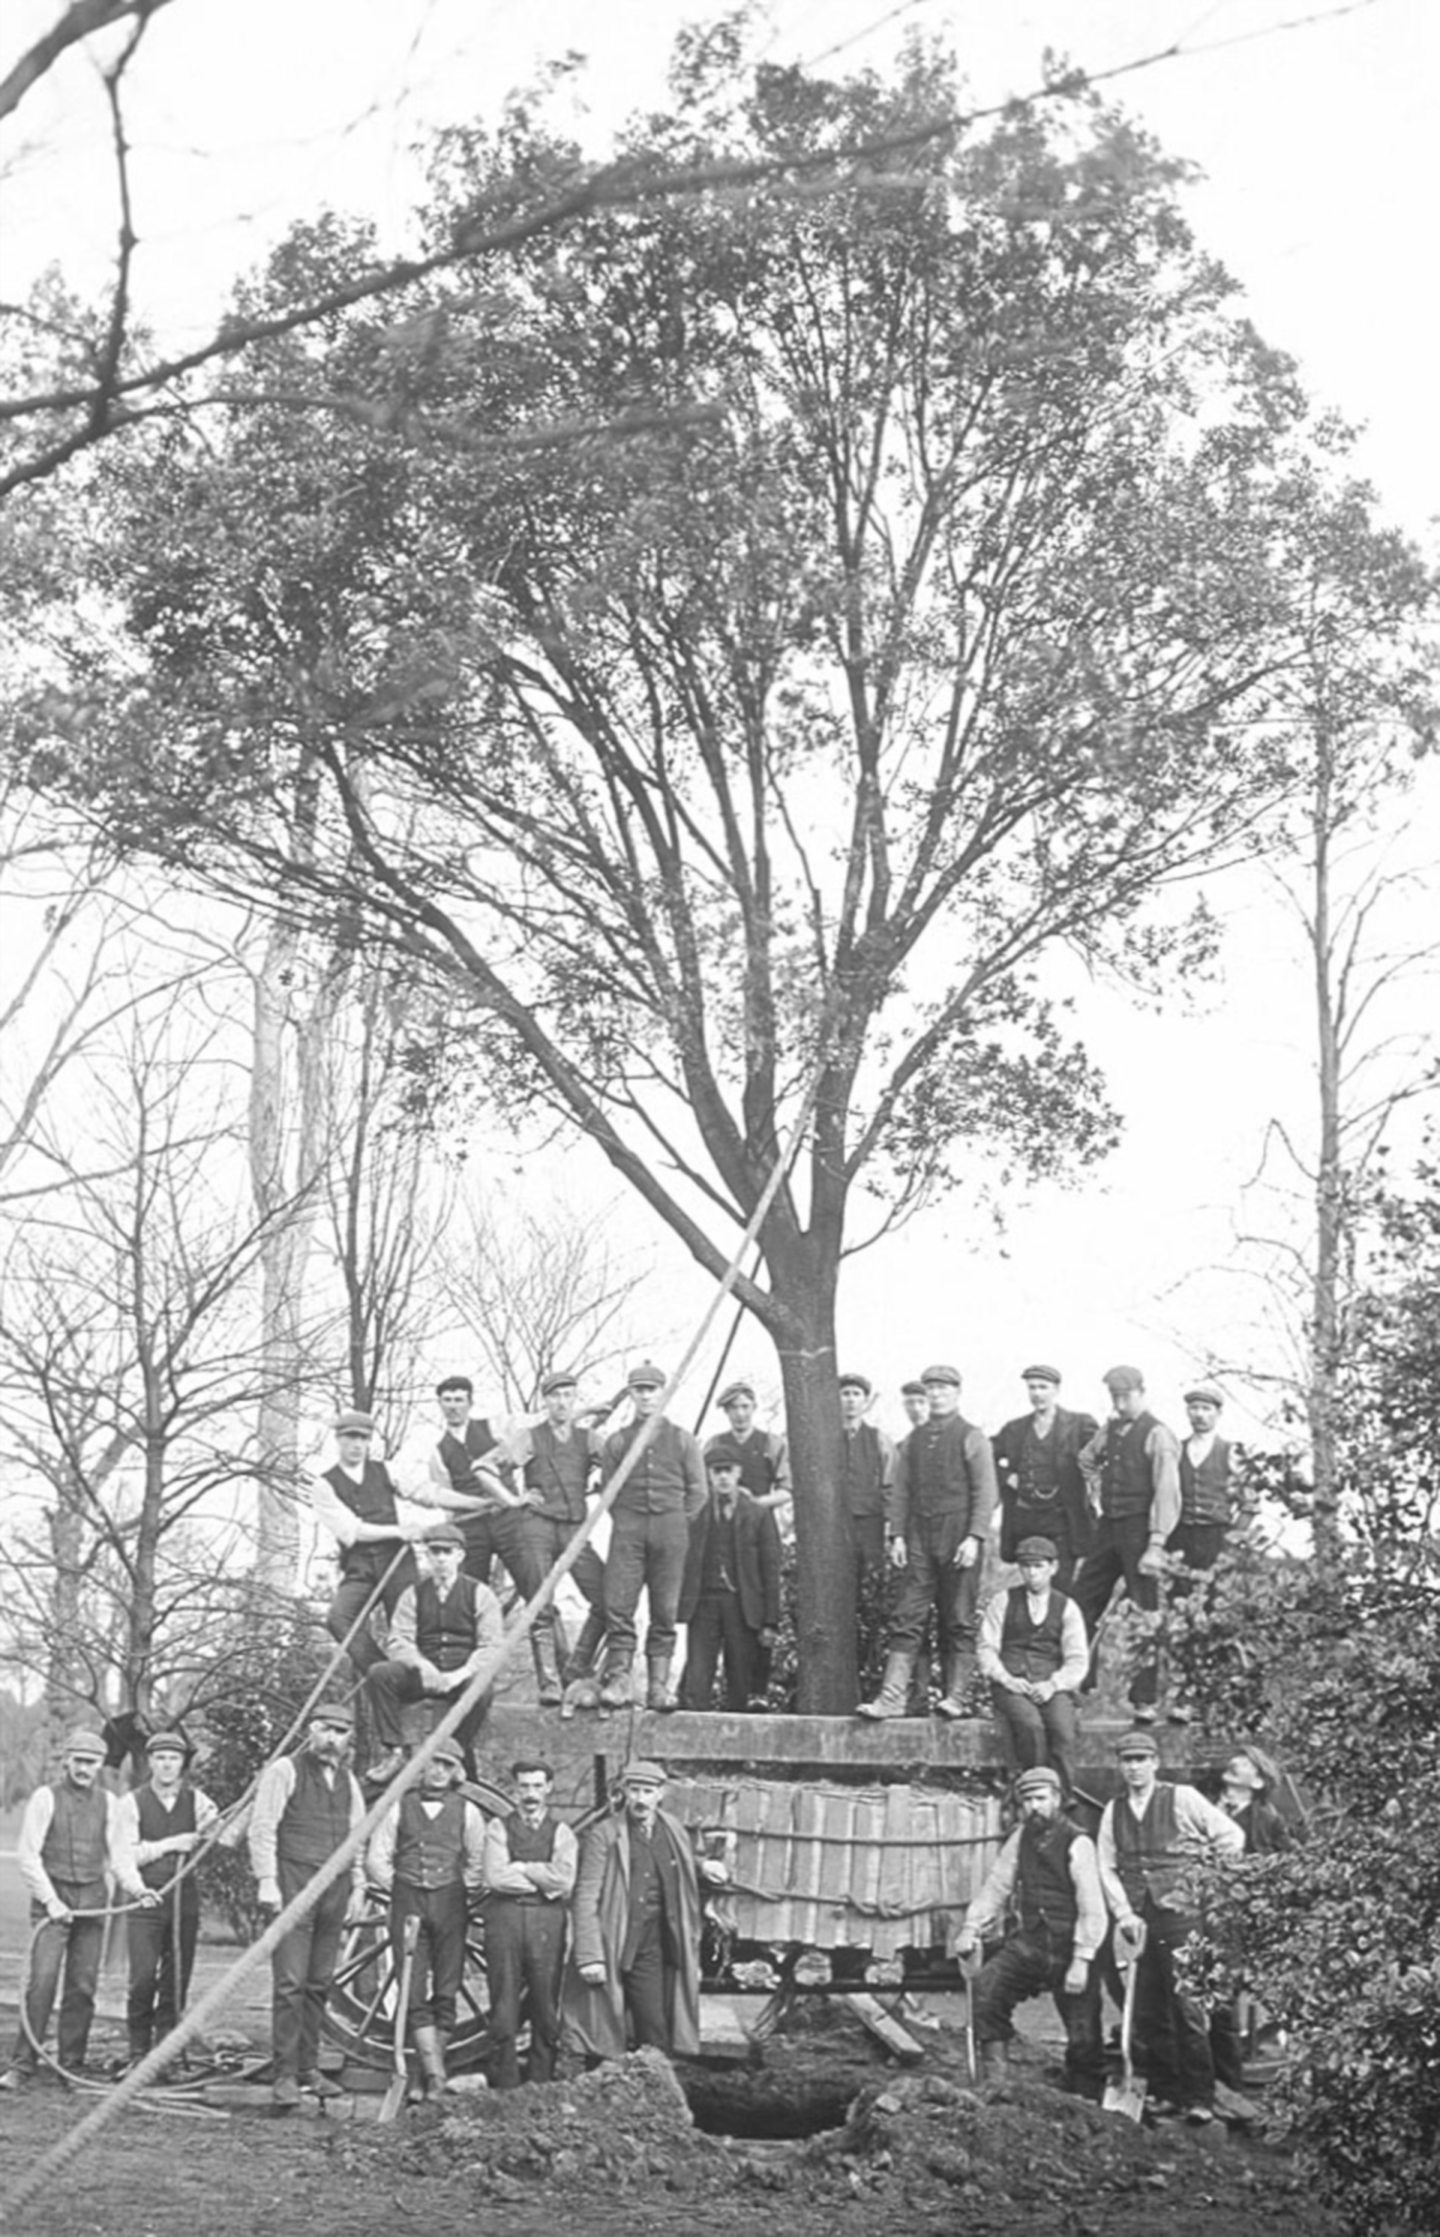 Diggers during Royal Botanic Garden Edinburgh's big move, tree by tree, plant by plant, from Leith to Inverleith in 1822